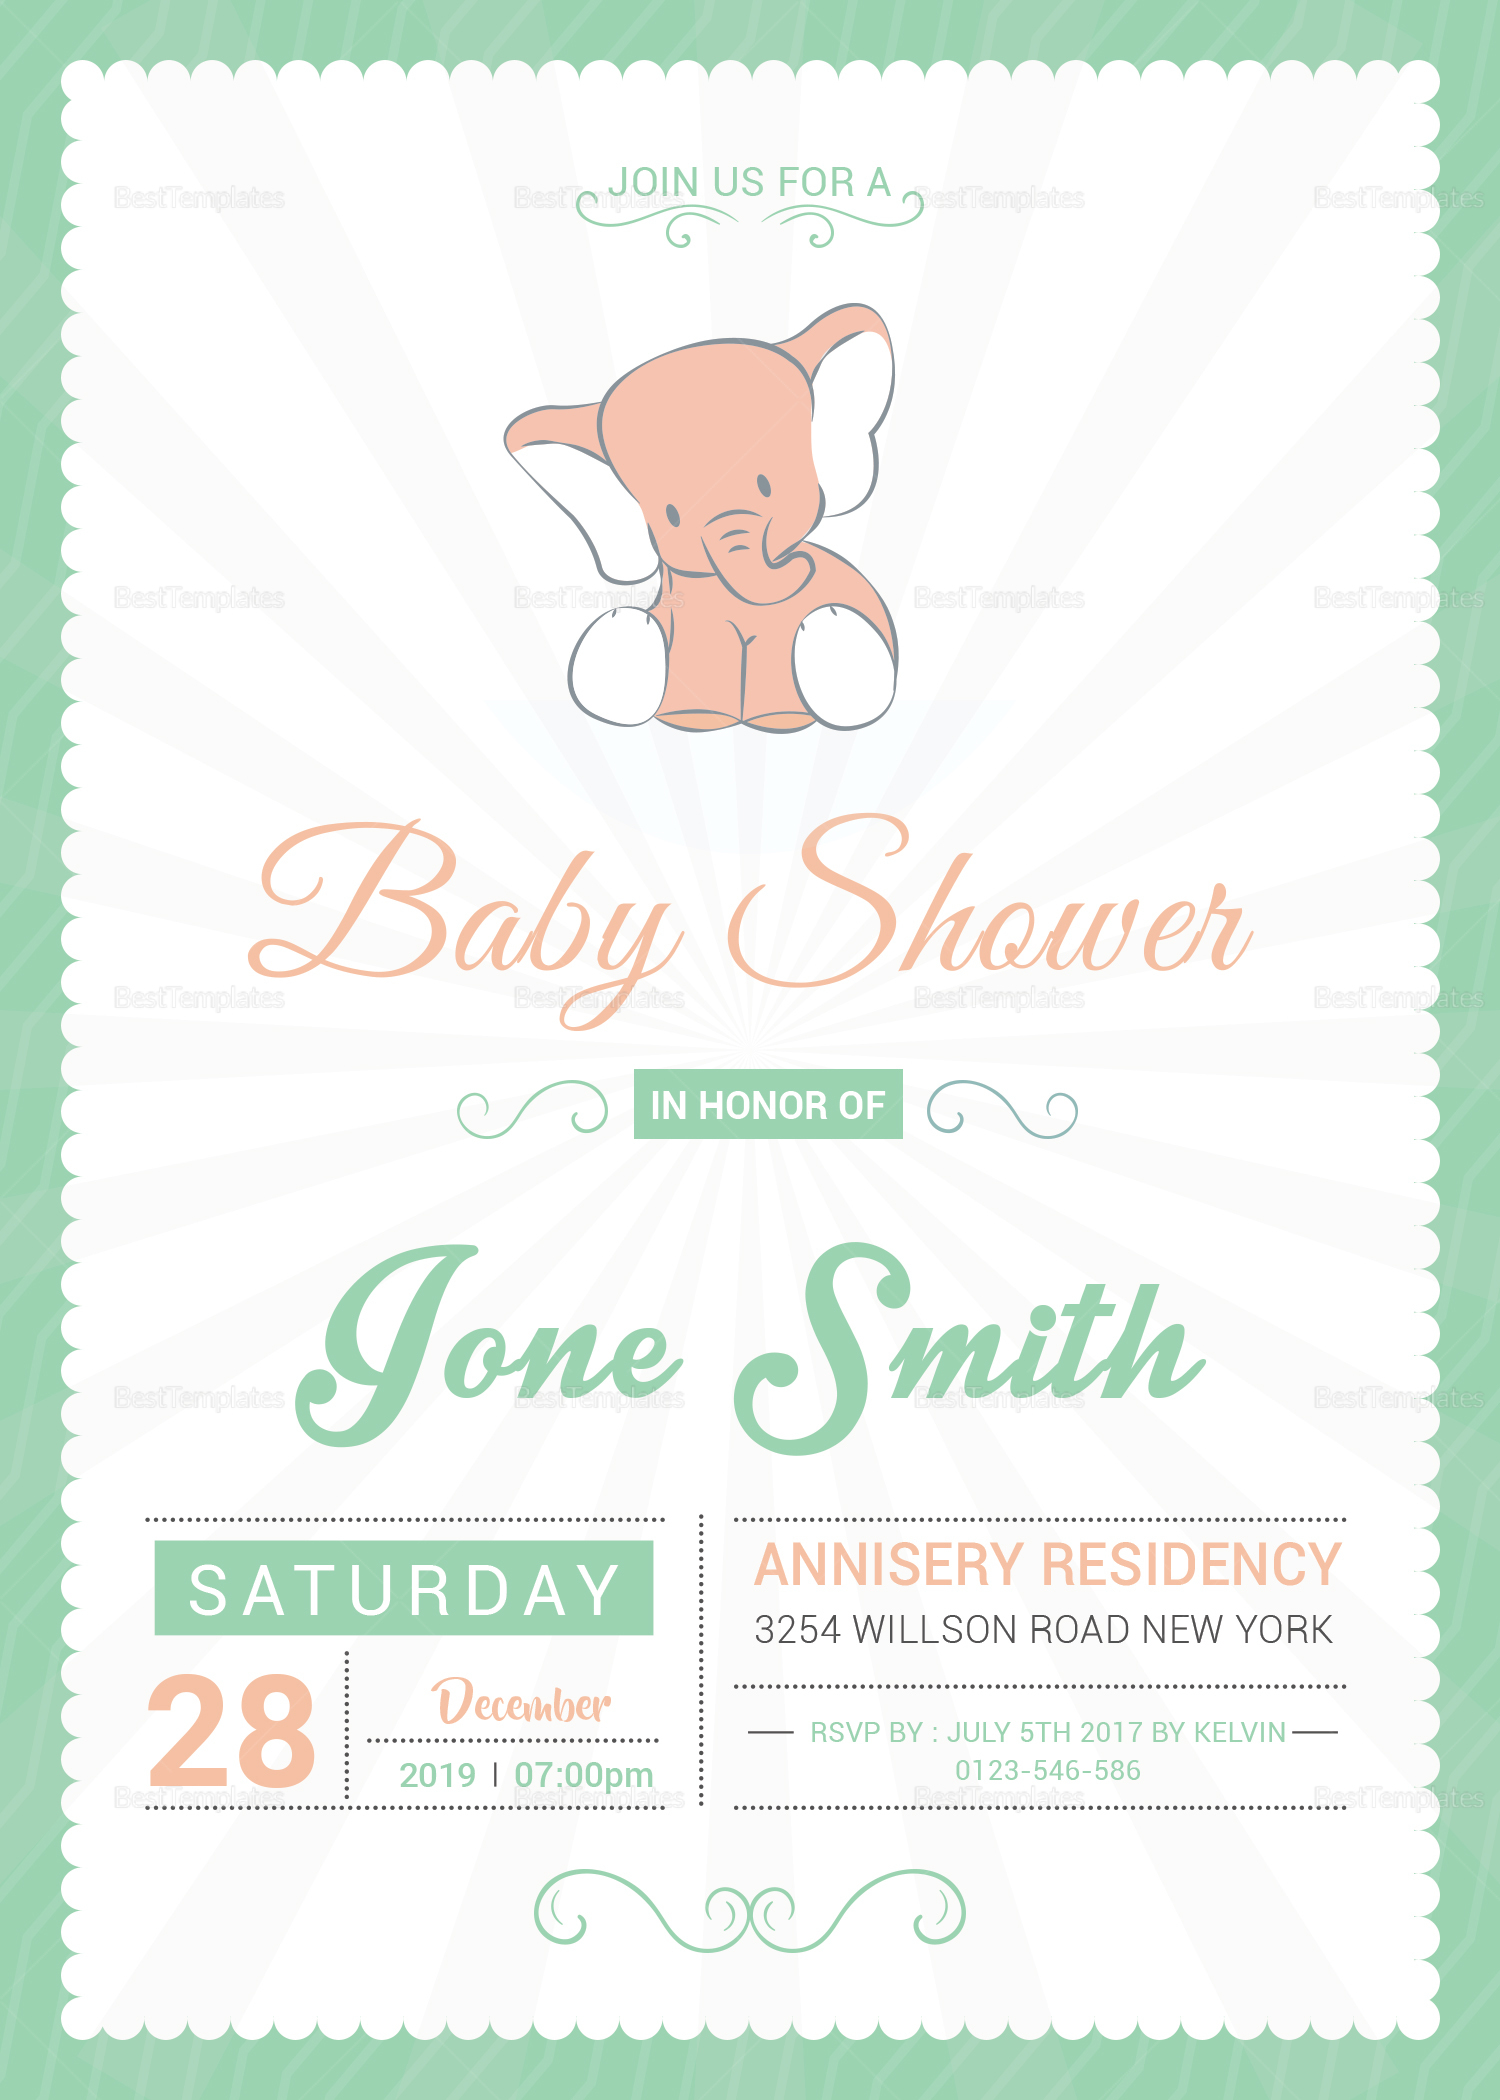 Baby Shower Announcement Invitation Design Template